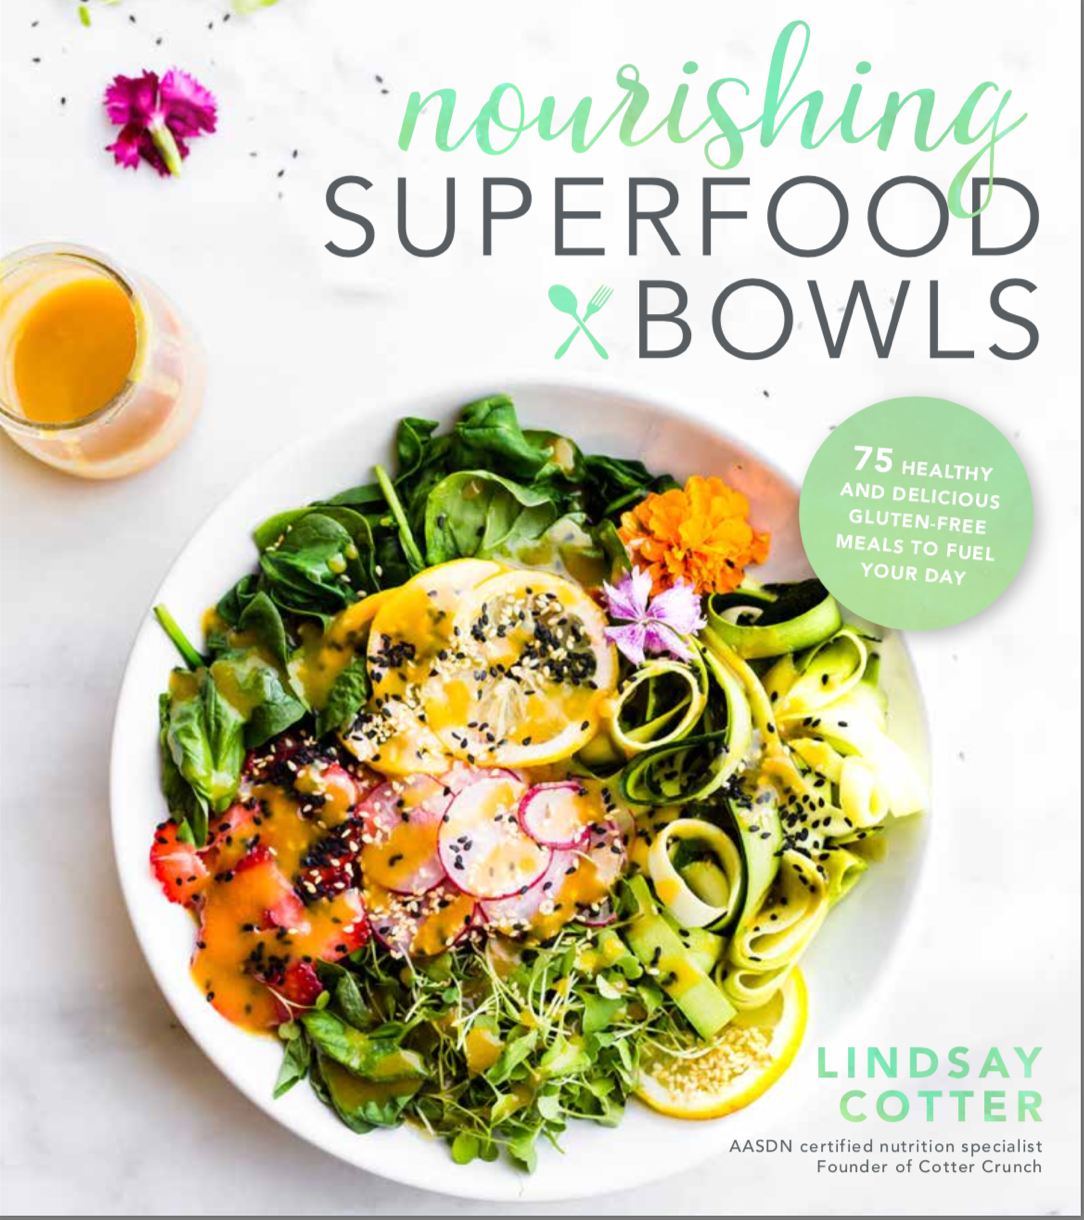 Nourishing Superfood Bowls - pre orders for cookbook on amazon